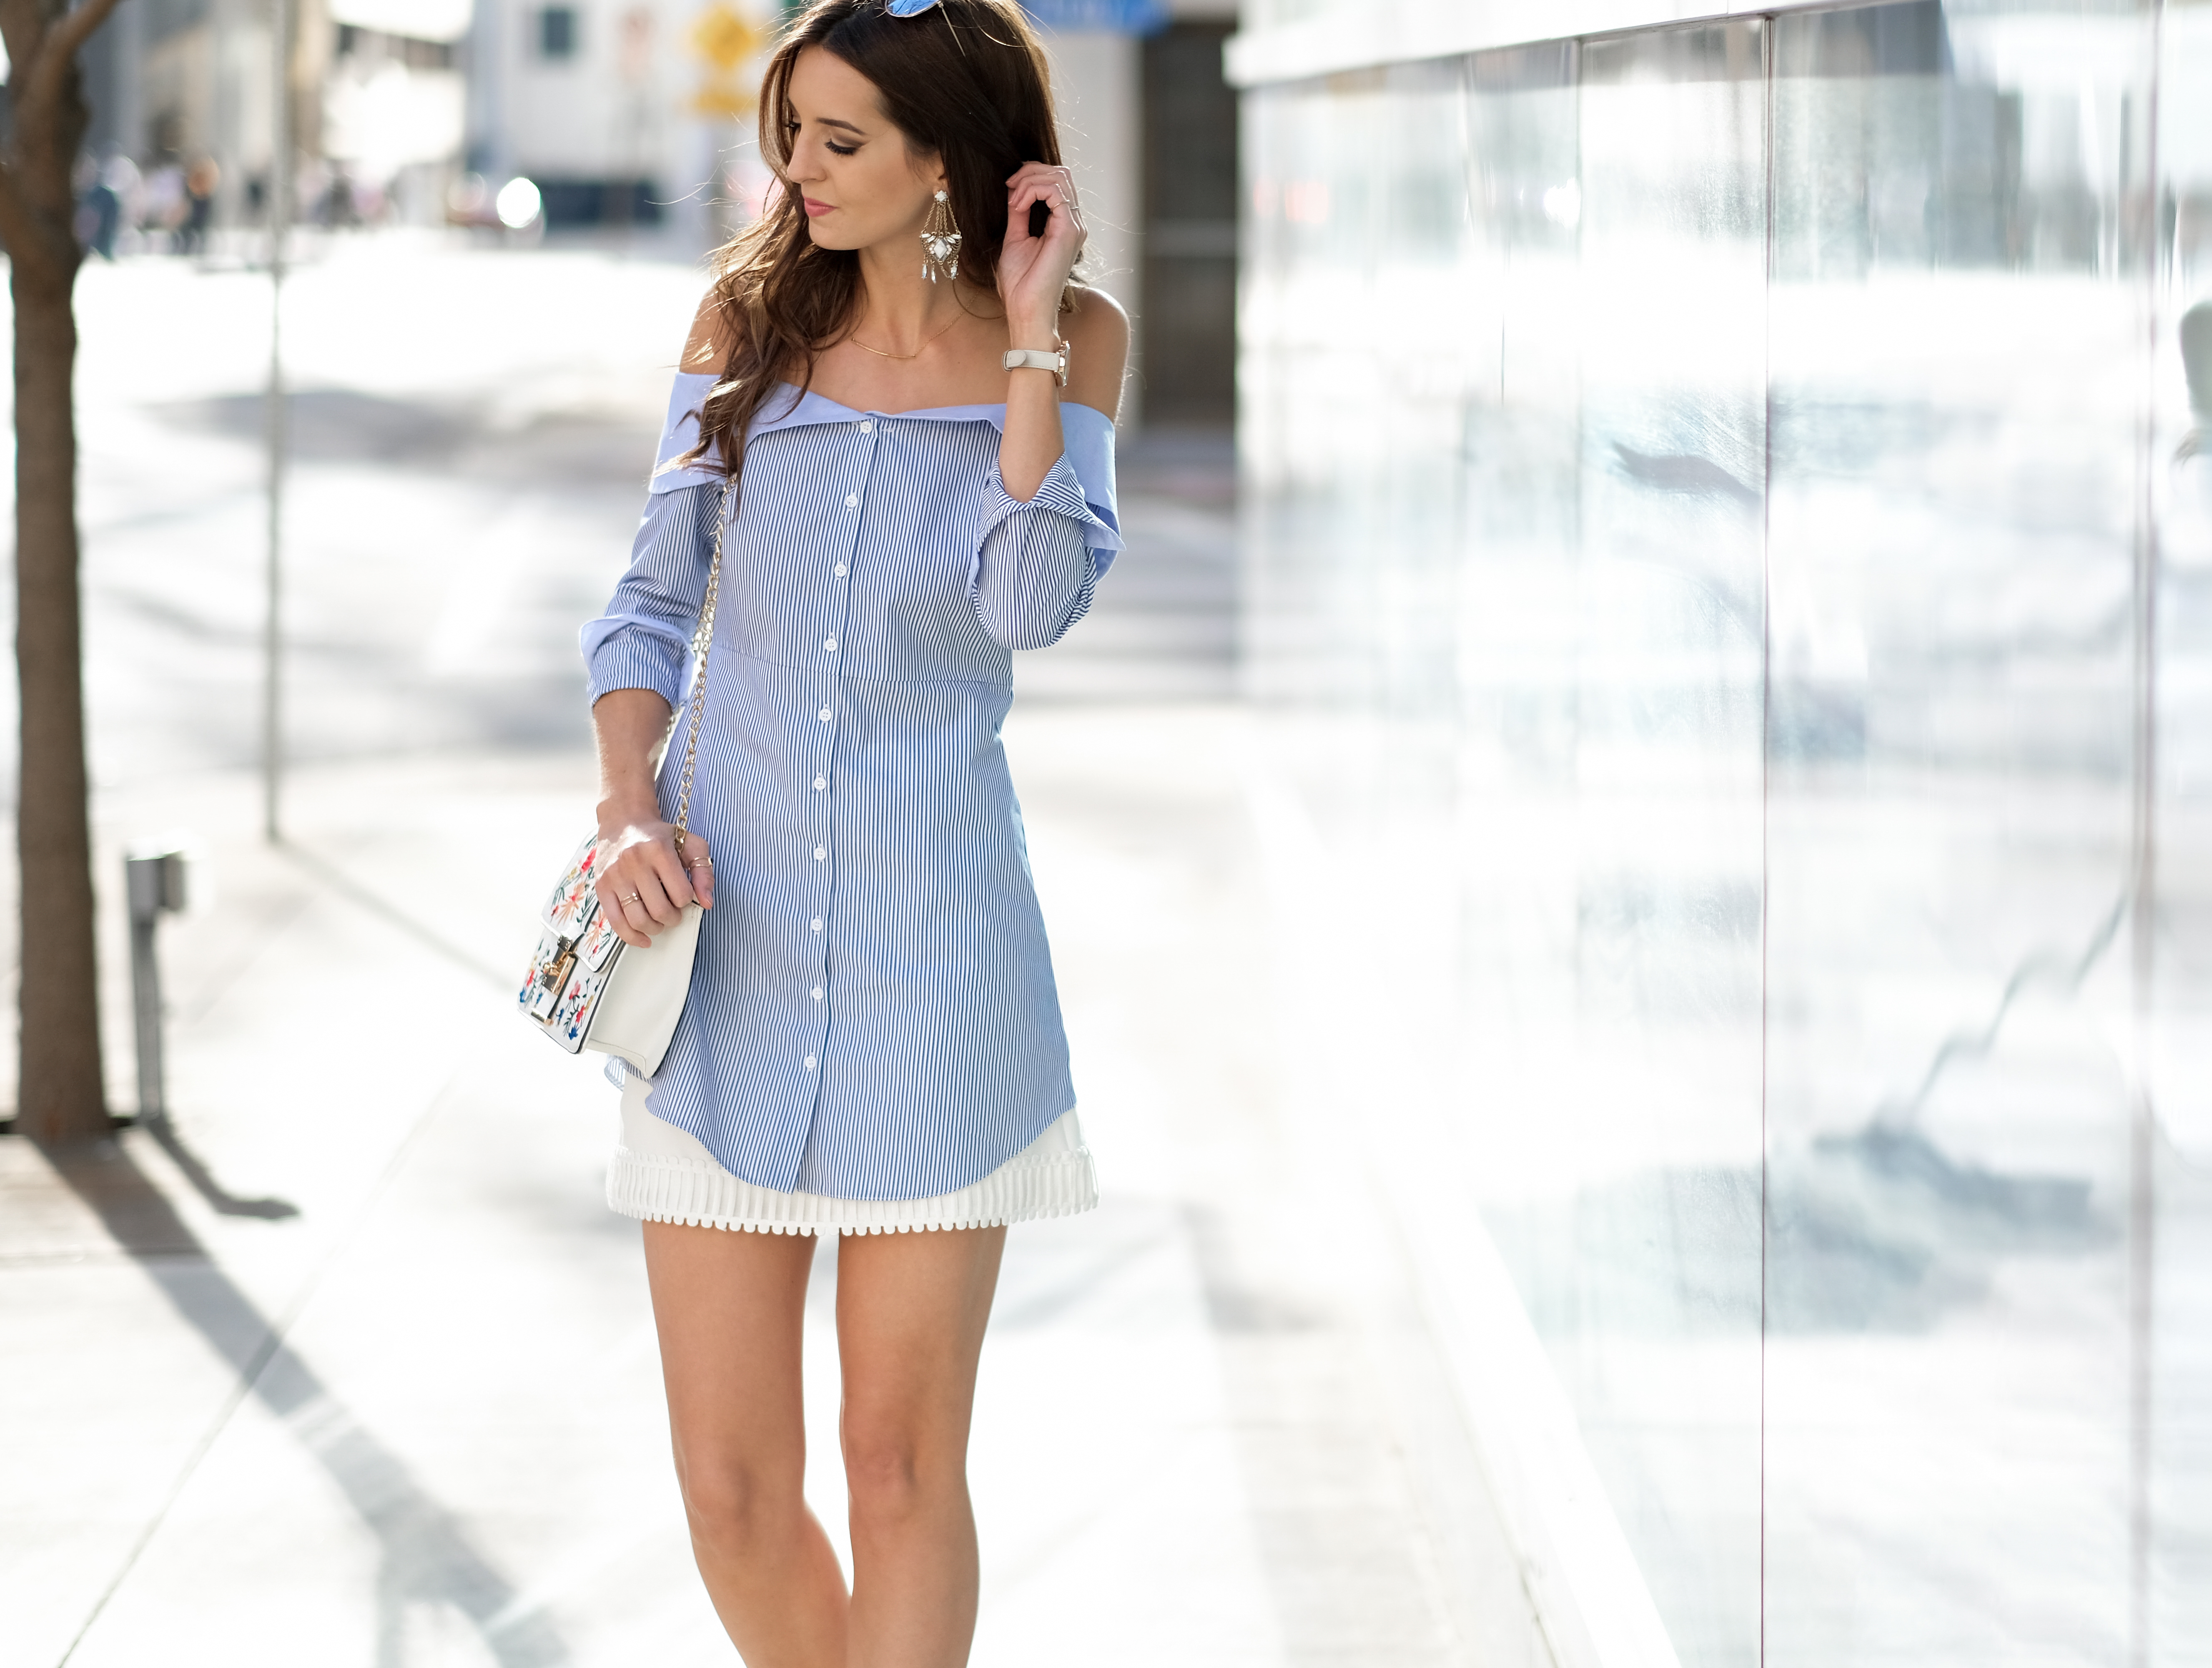 Shirtdress Styled 3 Ways